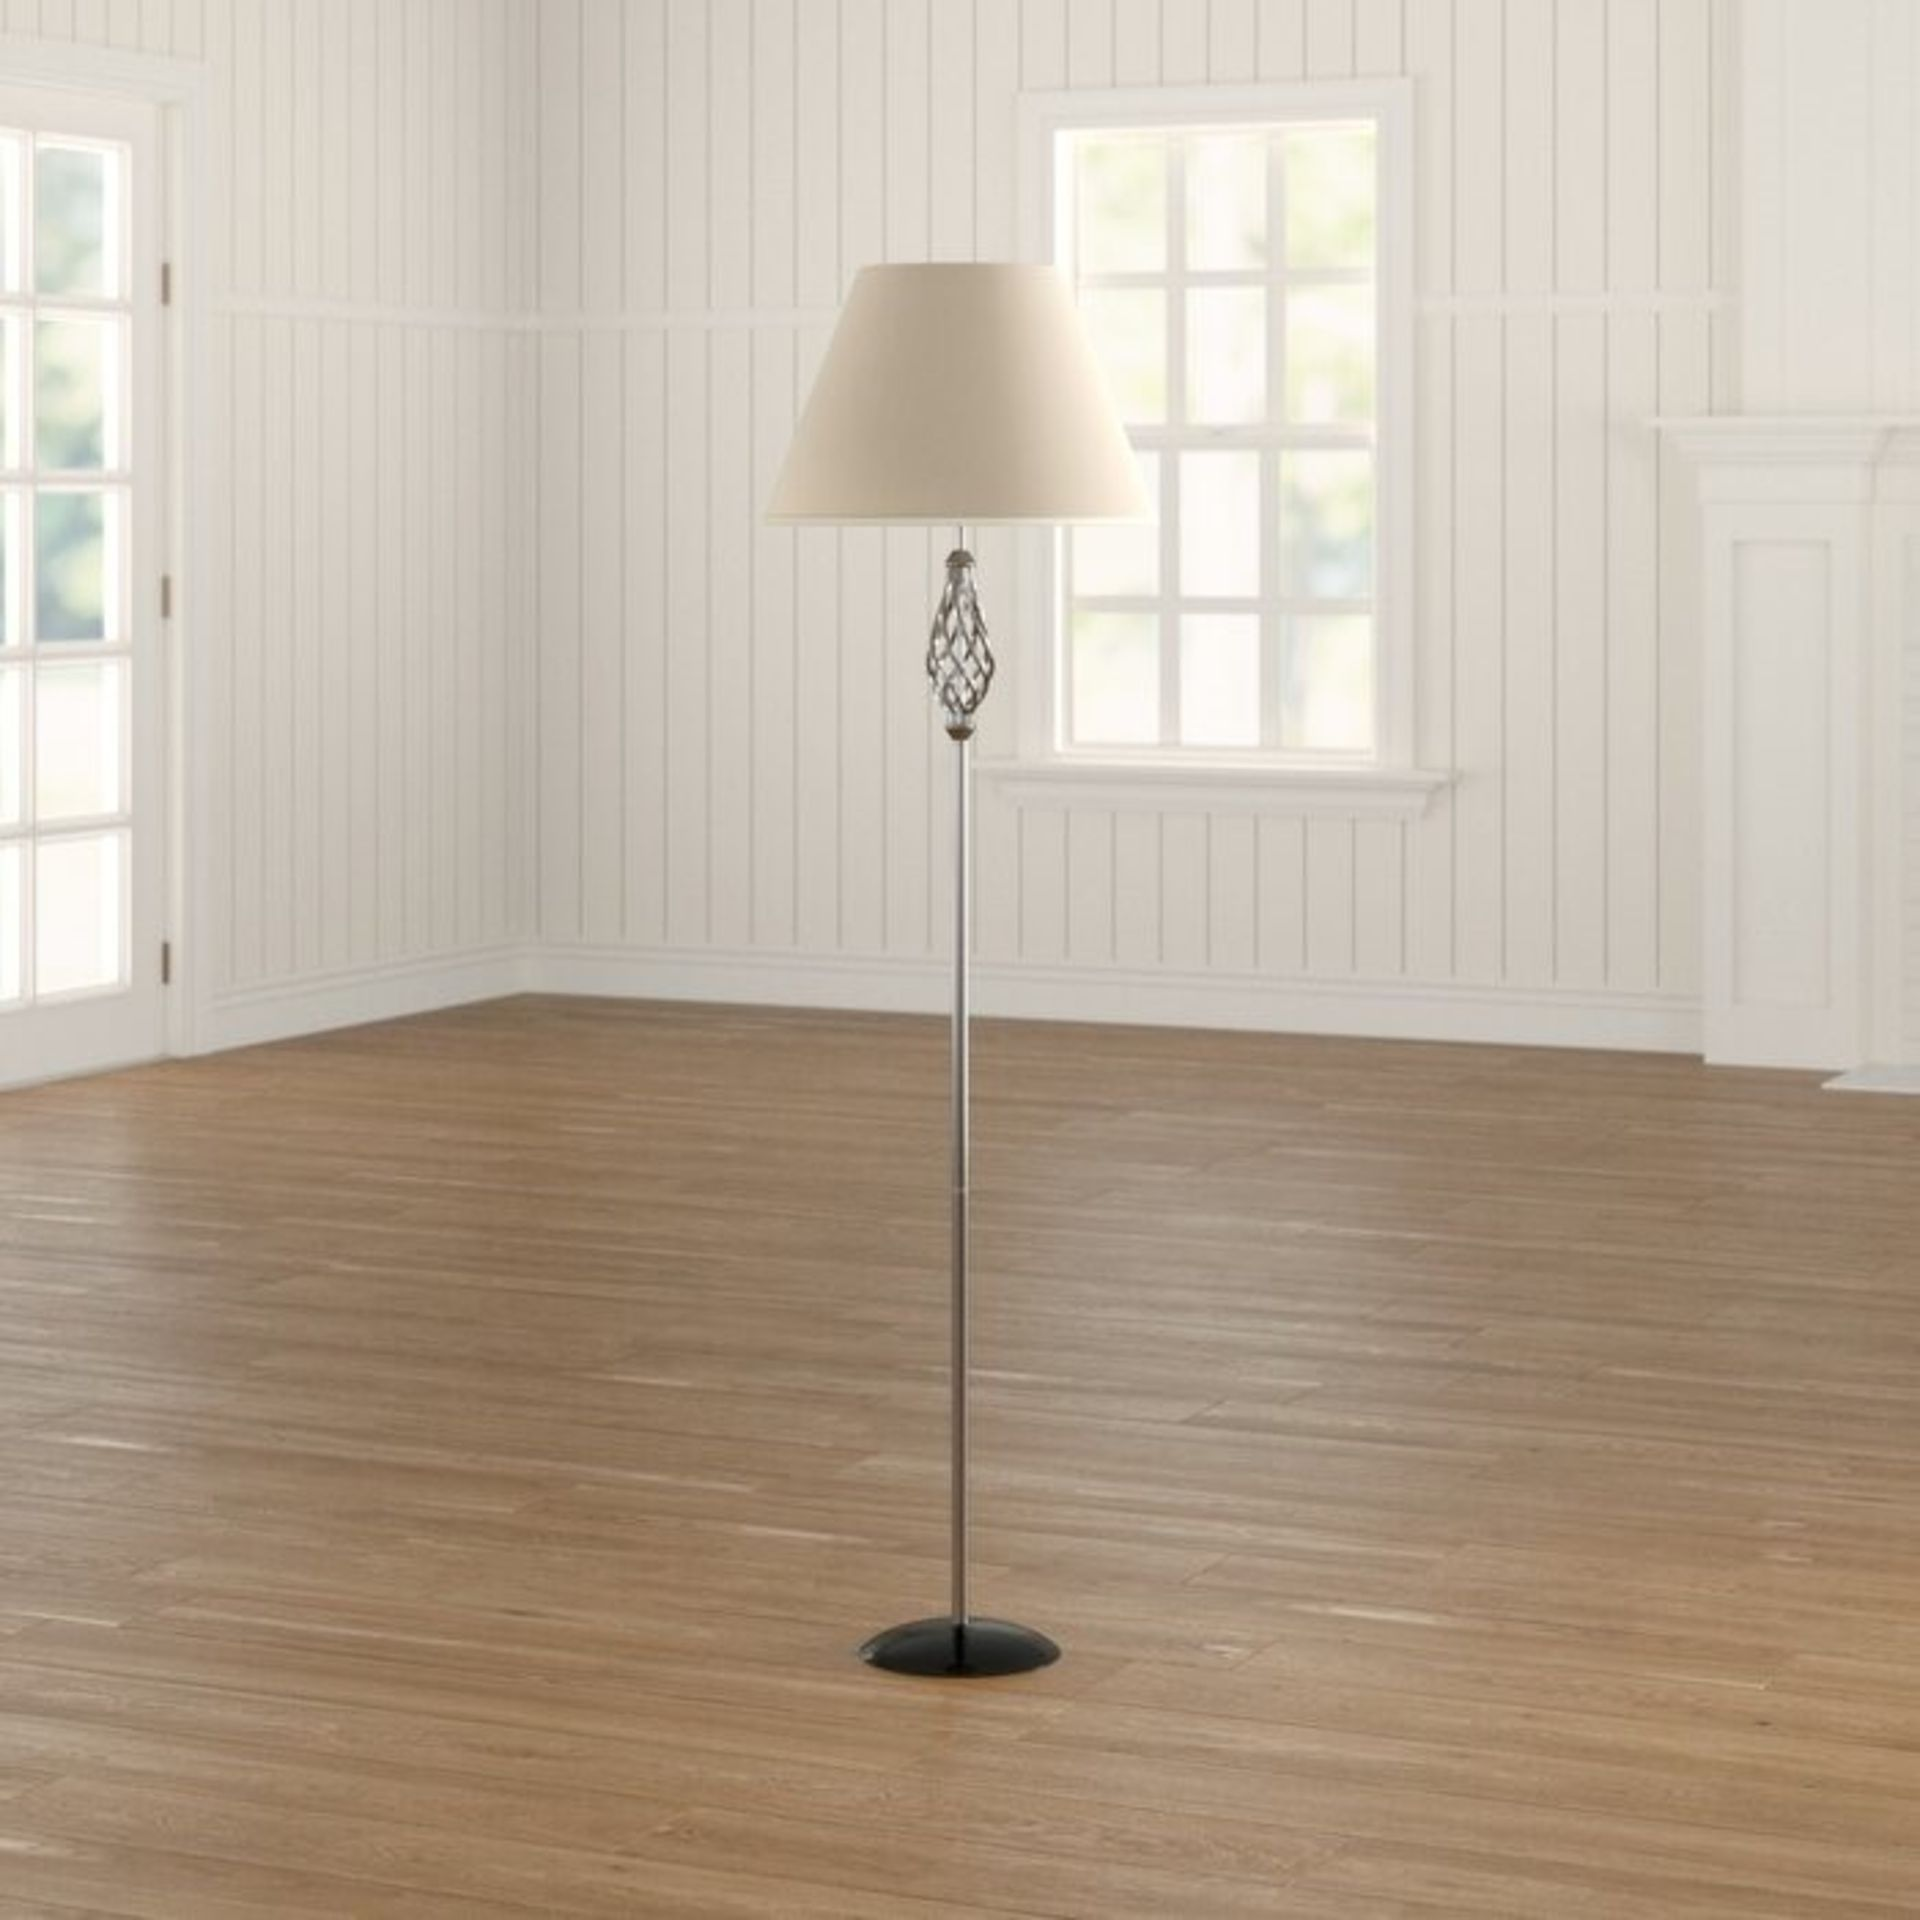 BRATTON 155CM TRADITIONAL FLOOR LAMP BY THREE POSTS